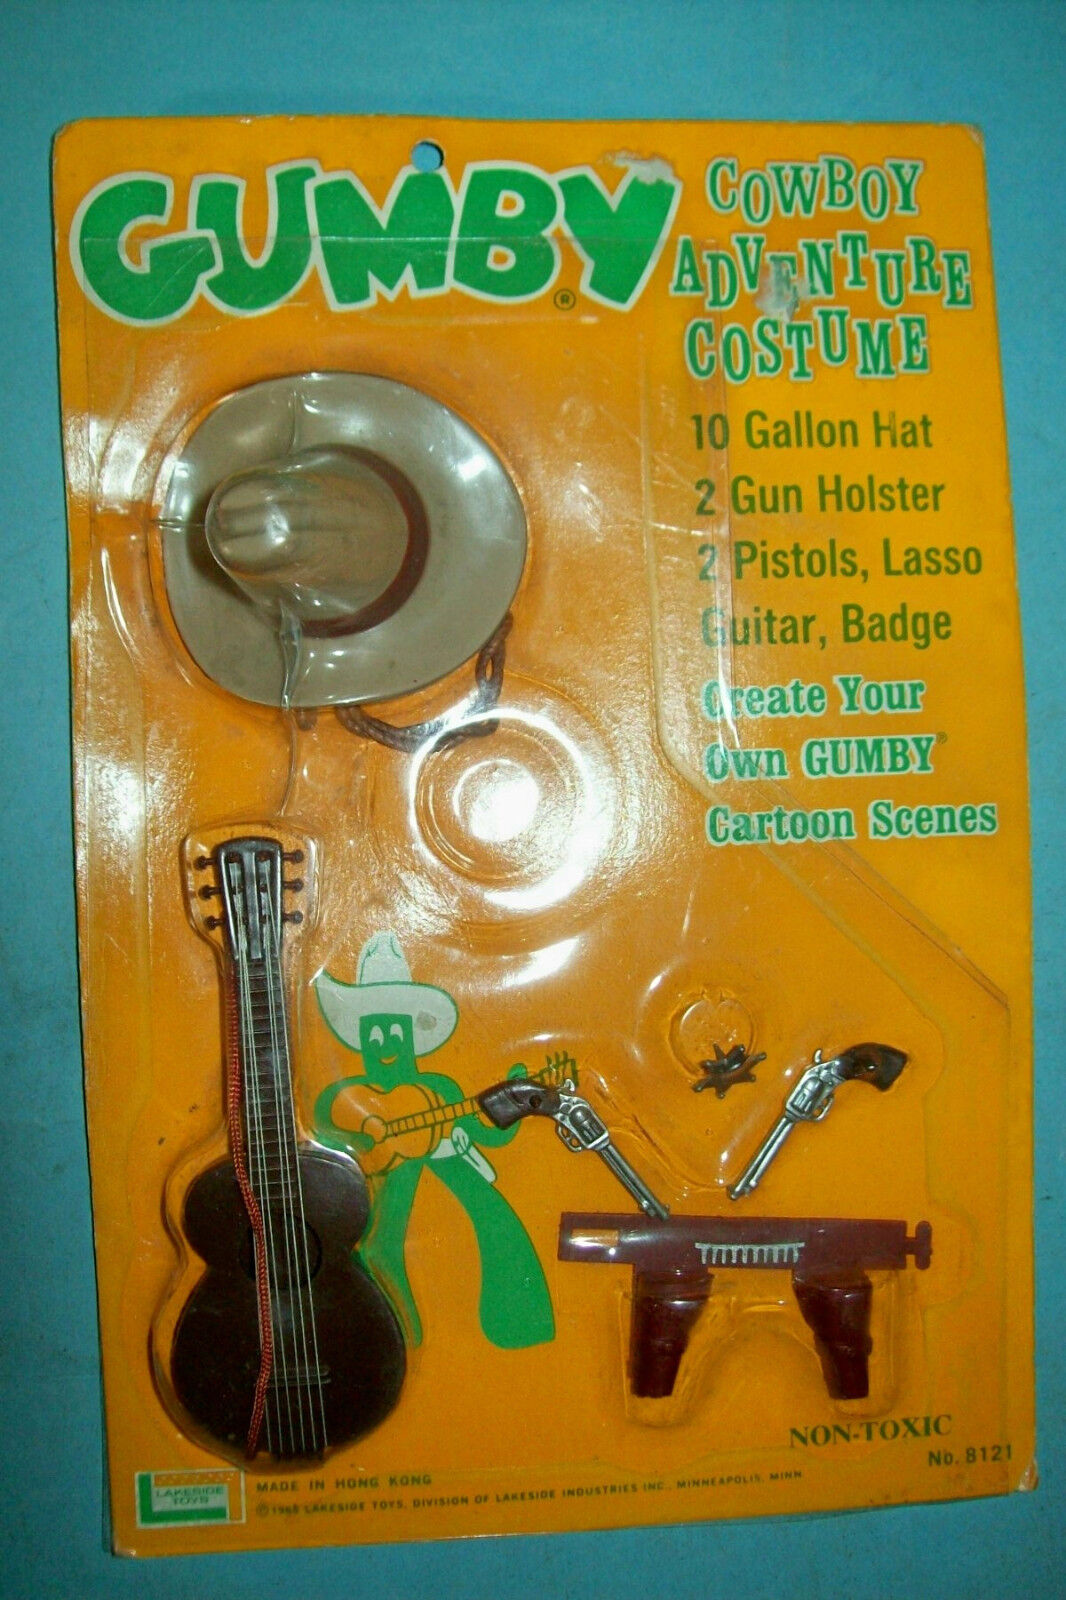 1965 Gumby Cowboy Adventure Costume Costume Costume Set by Lakeside   Unused MOC   Free Shipping 1c8c91